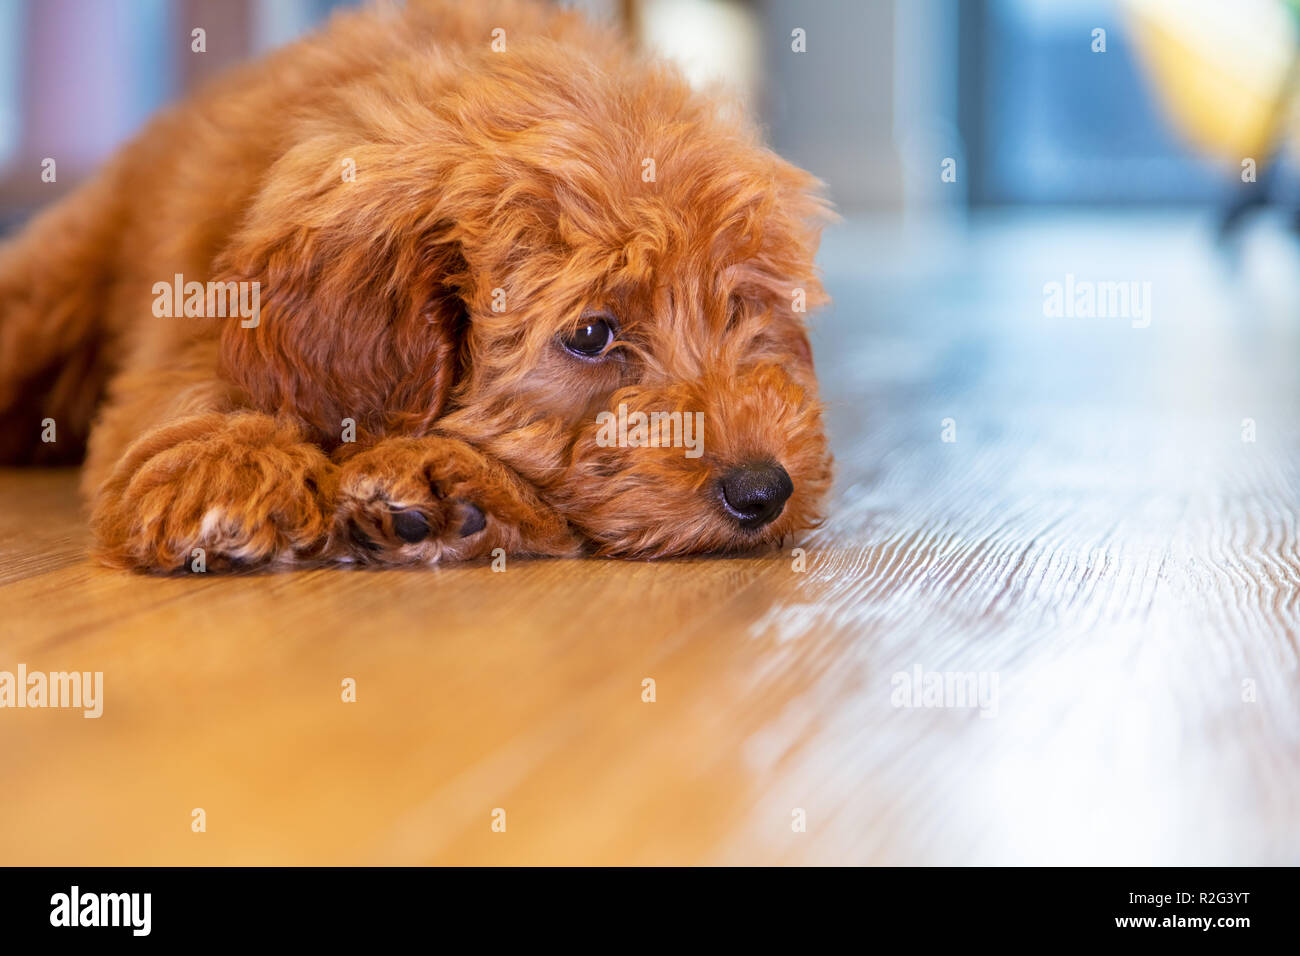 Cute Labradoodle Puppy High Resolution Stock Photography And Images Alamy